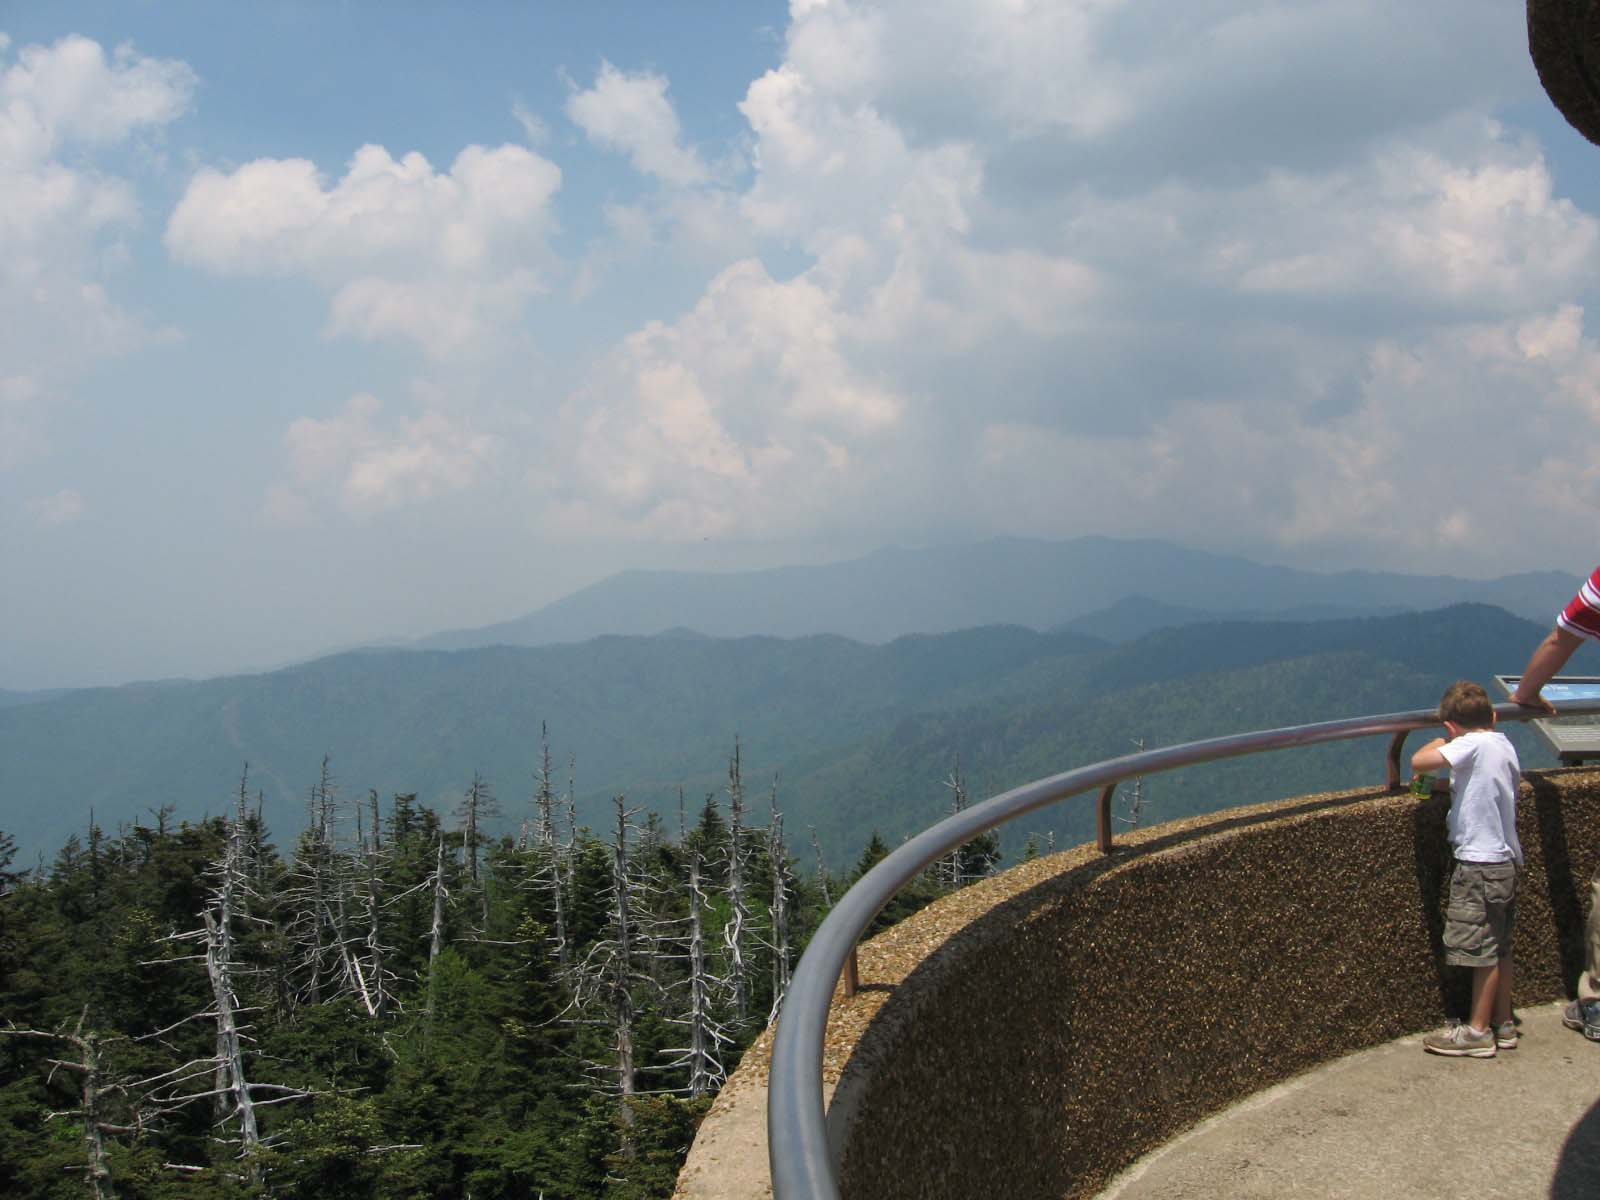 Top of Clingmans Dome